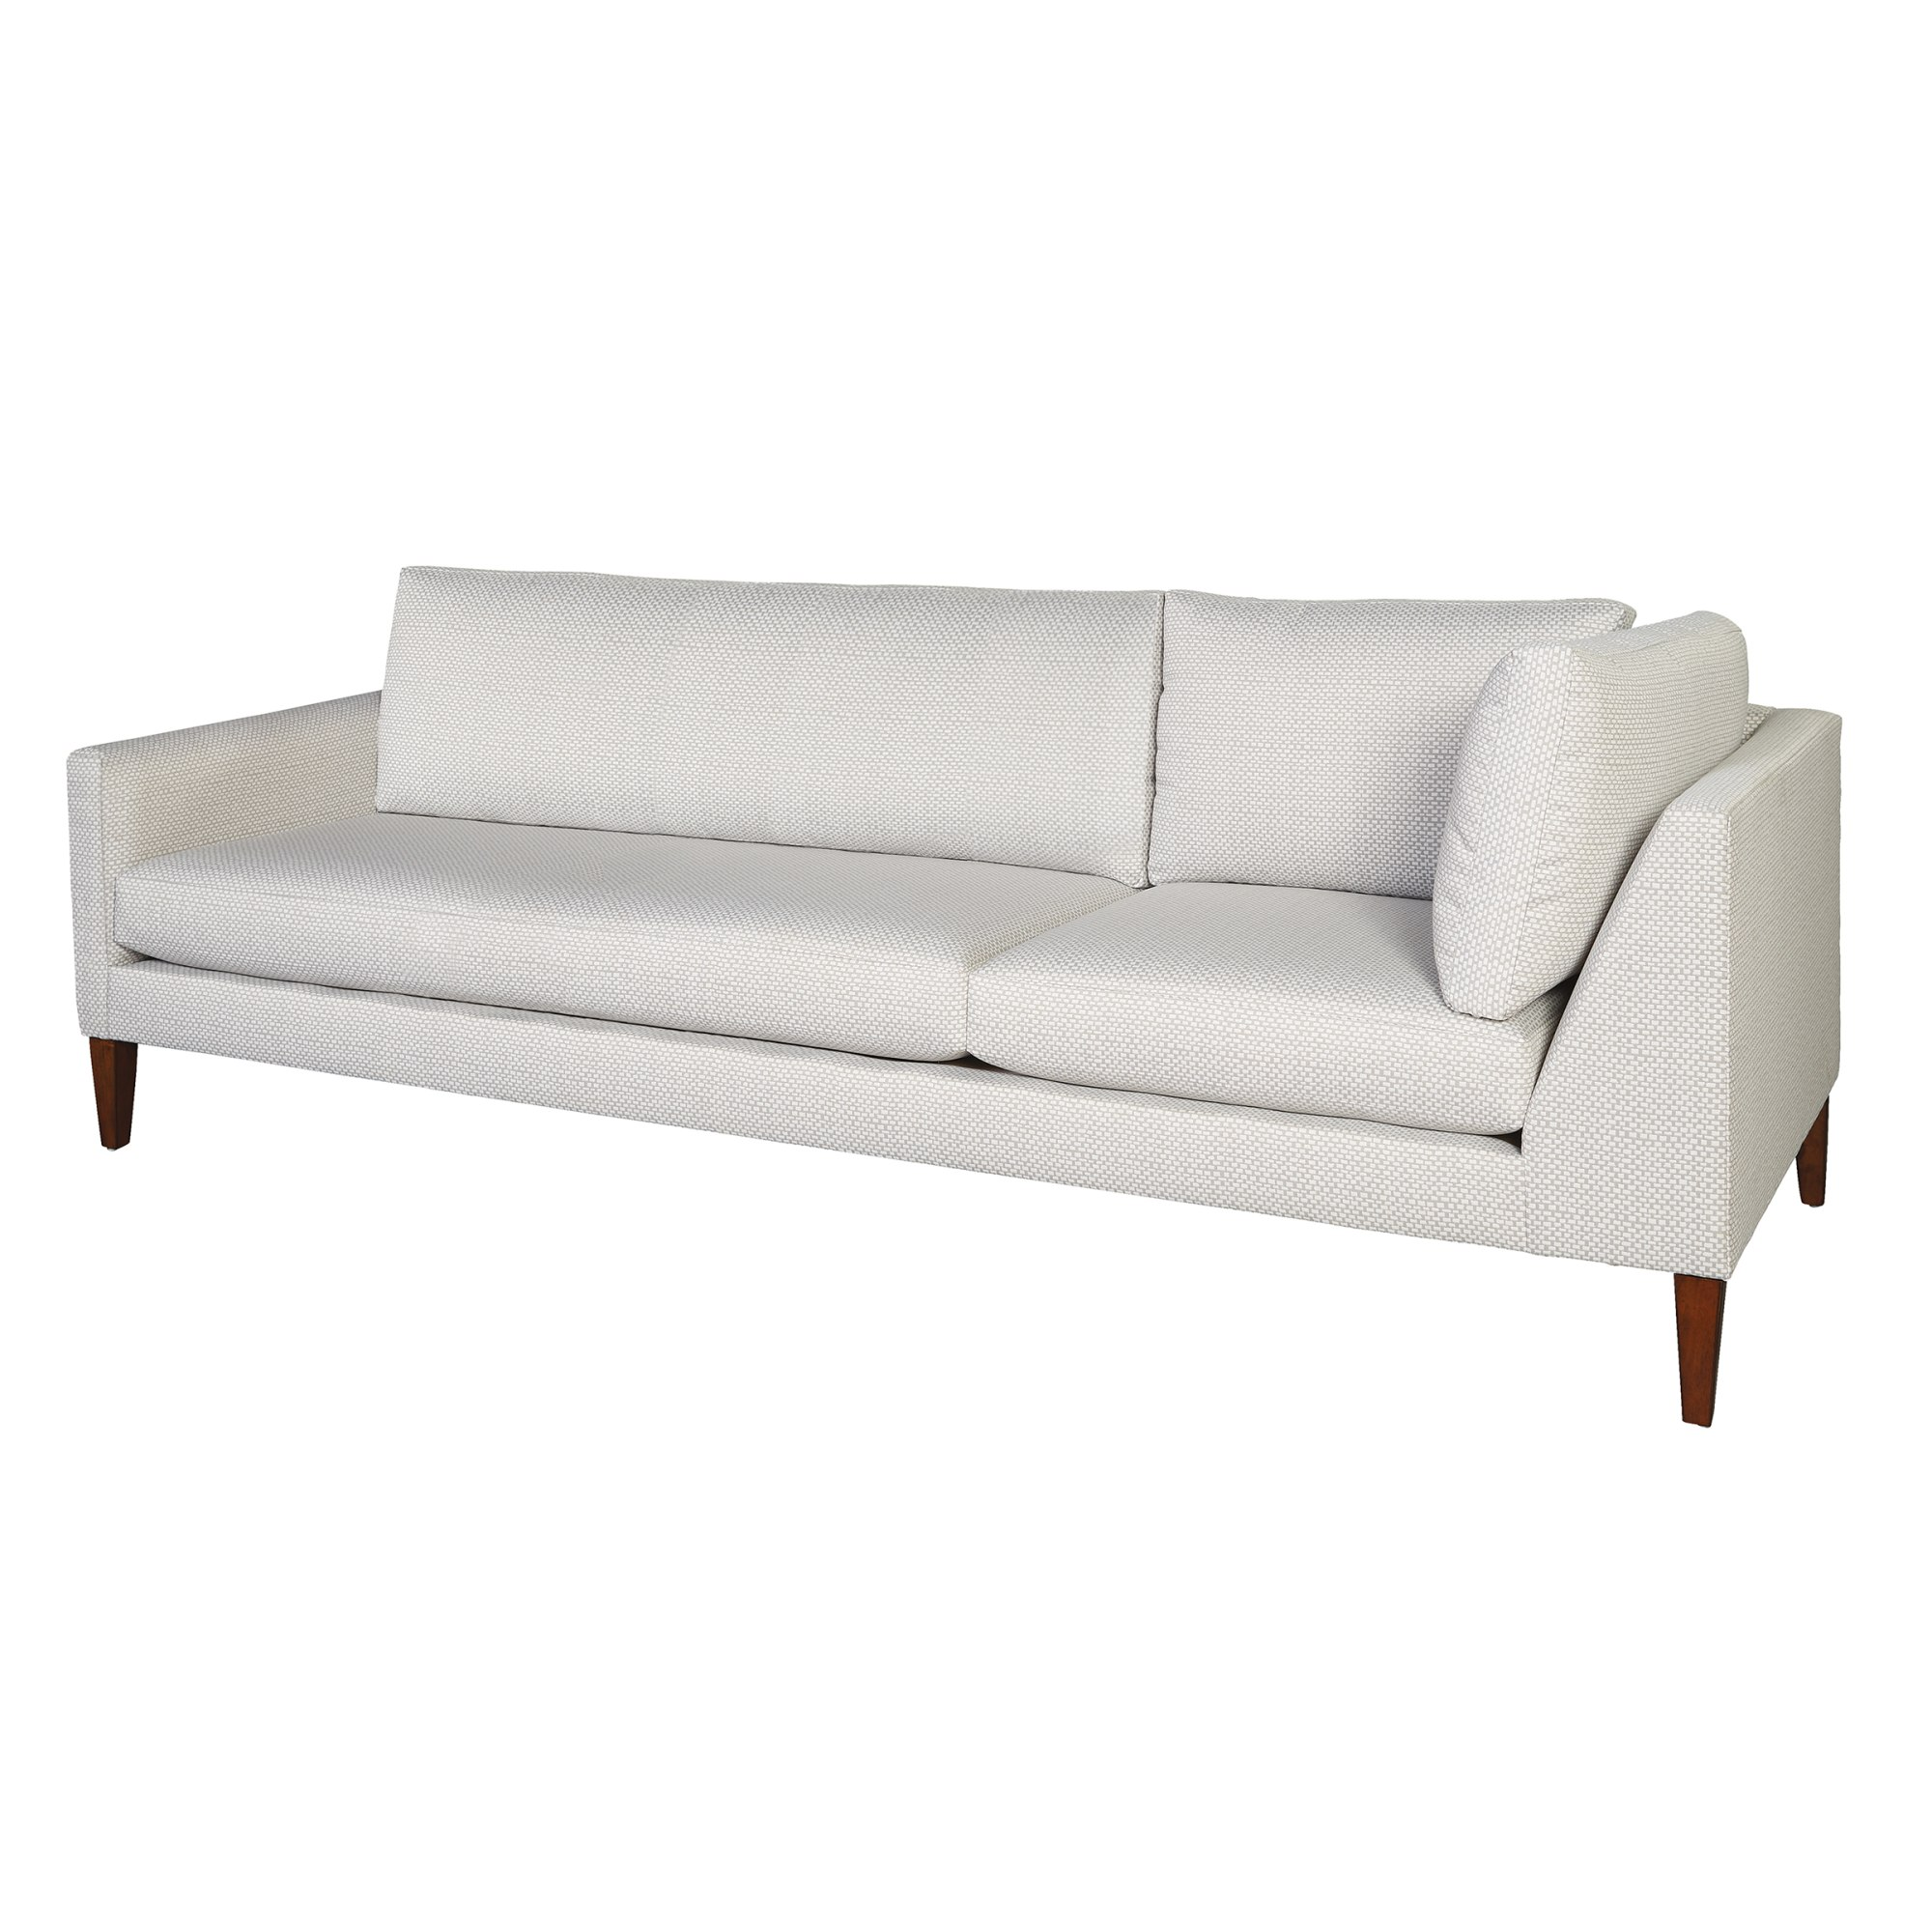 Image for 174191 Metro Track Arm Corner Sofa LAF from Hekman Official Website